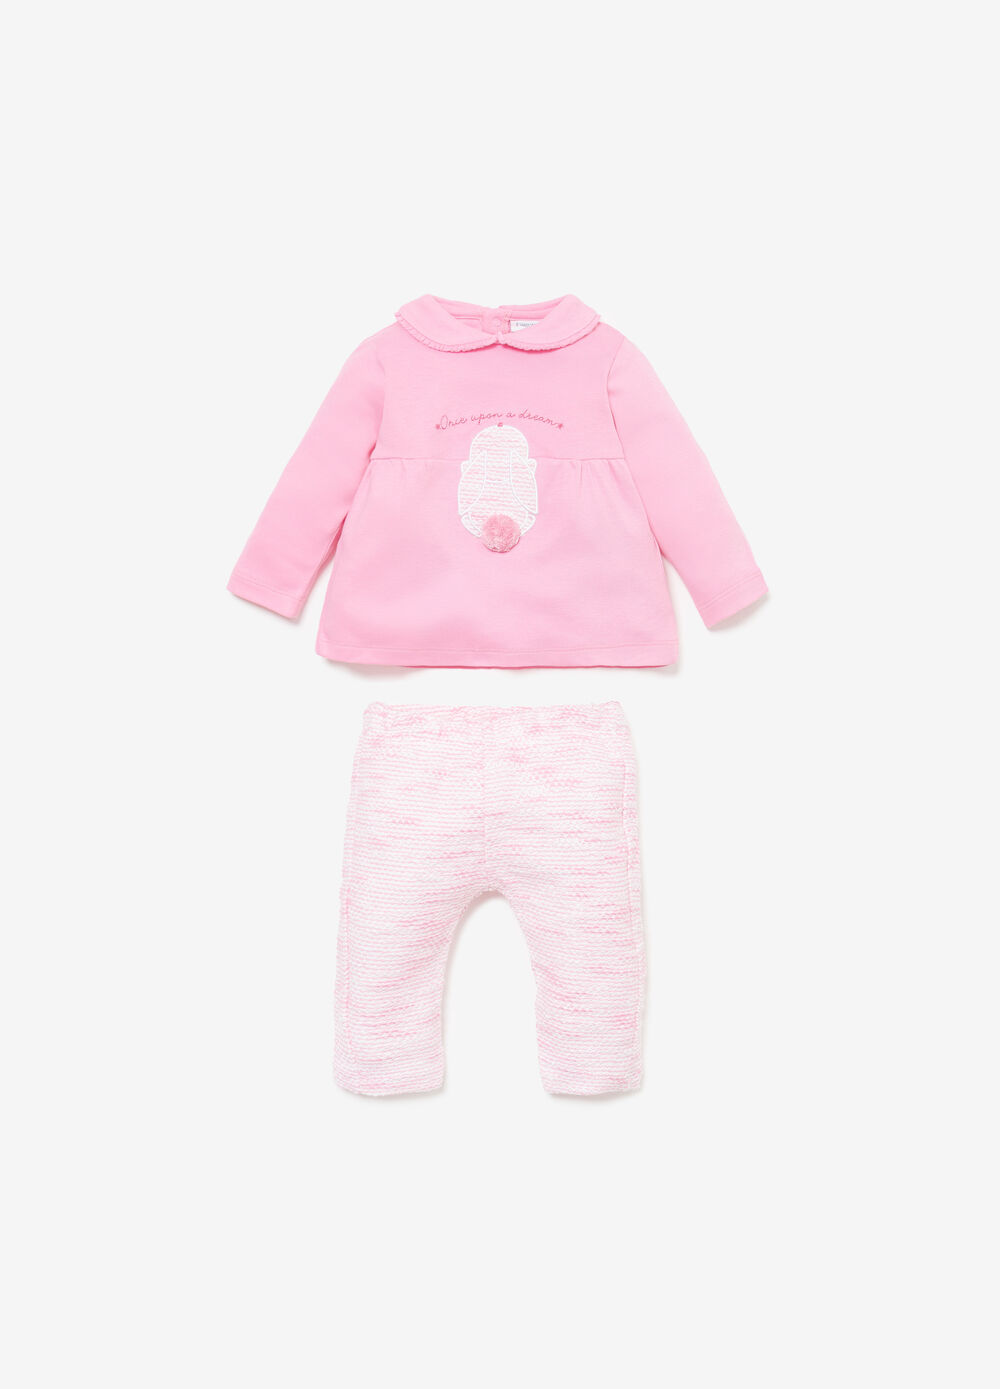 Rabbit T-shirt and trousers outfit